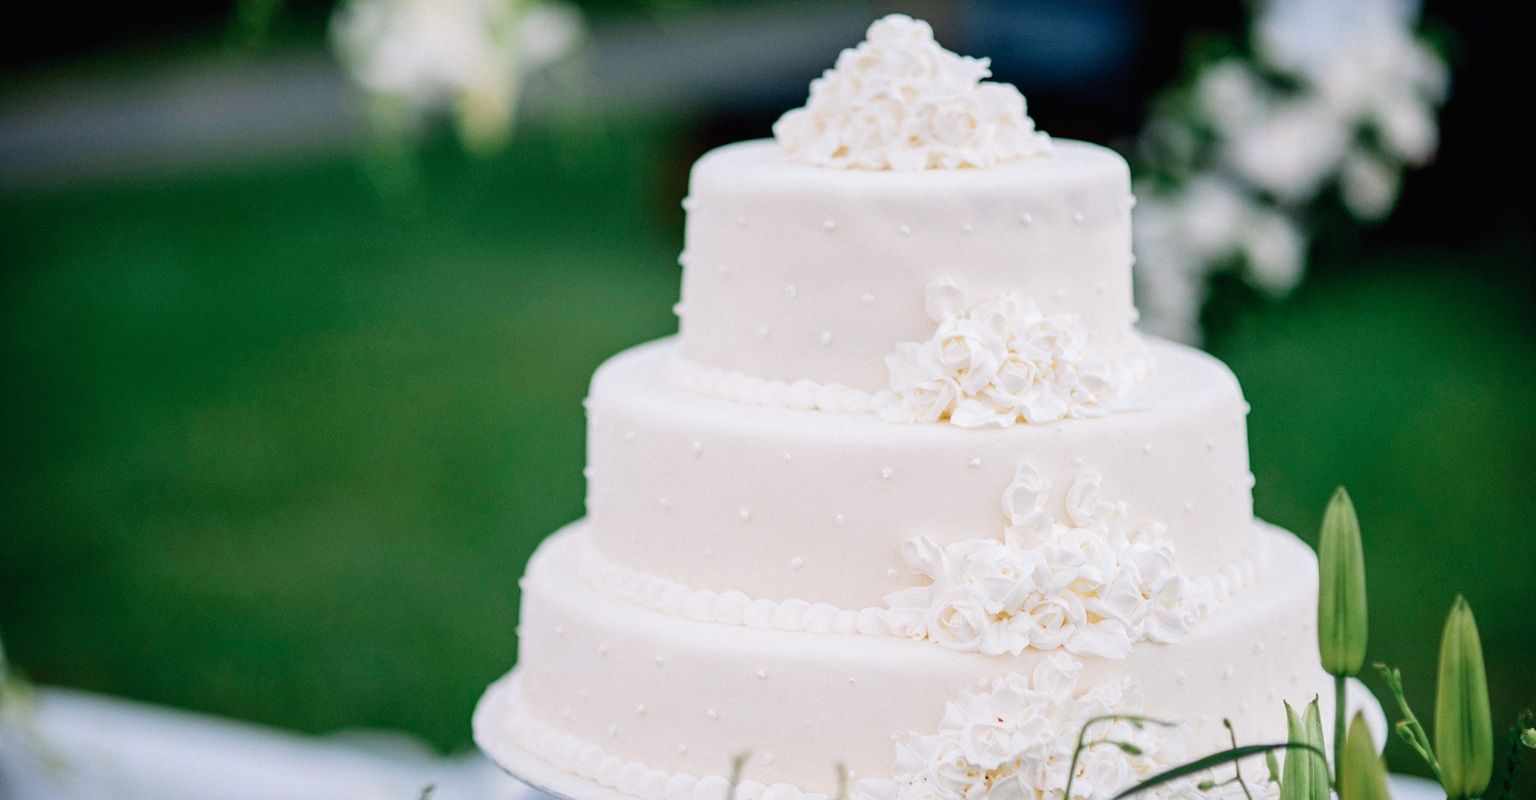 Wedding Cake Costs Servings Delivery Info 2020 Prices Avg